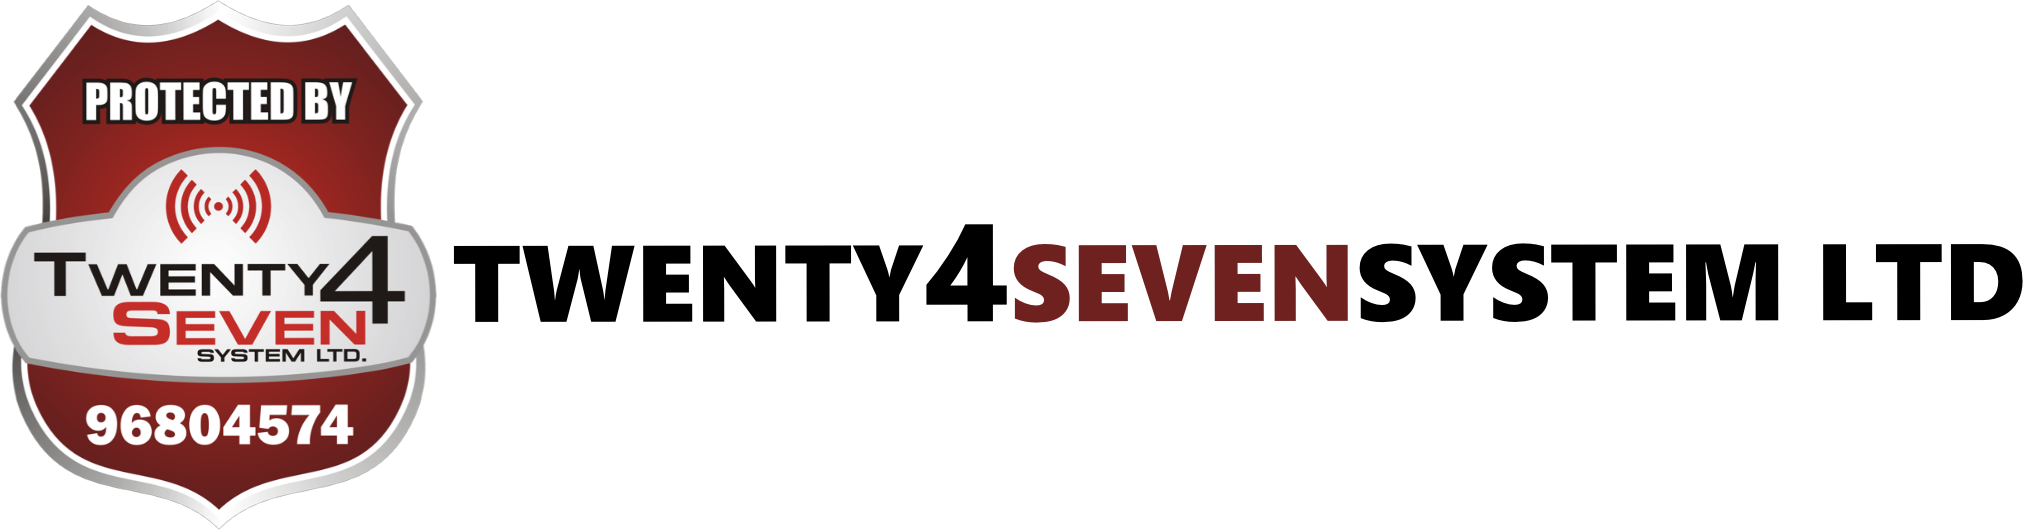 Twenty4Seven Systems Ltd